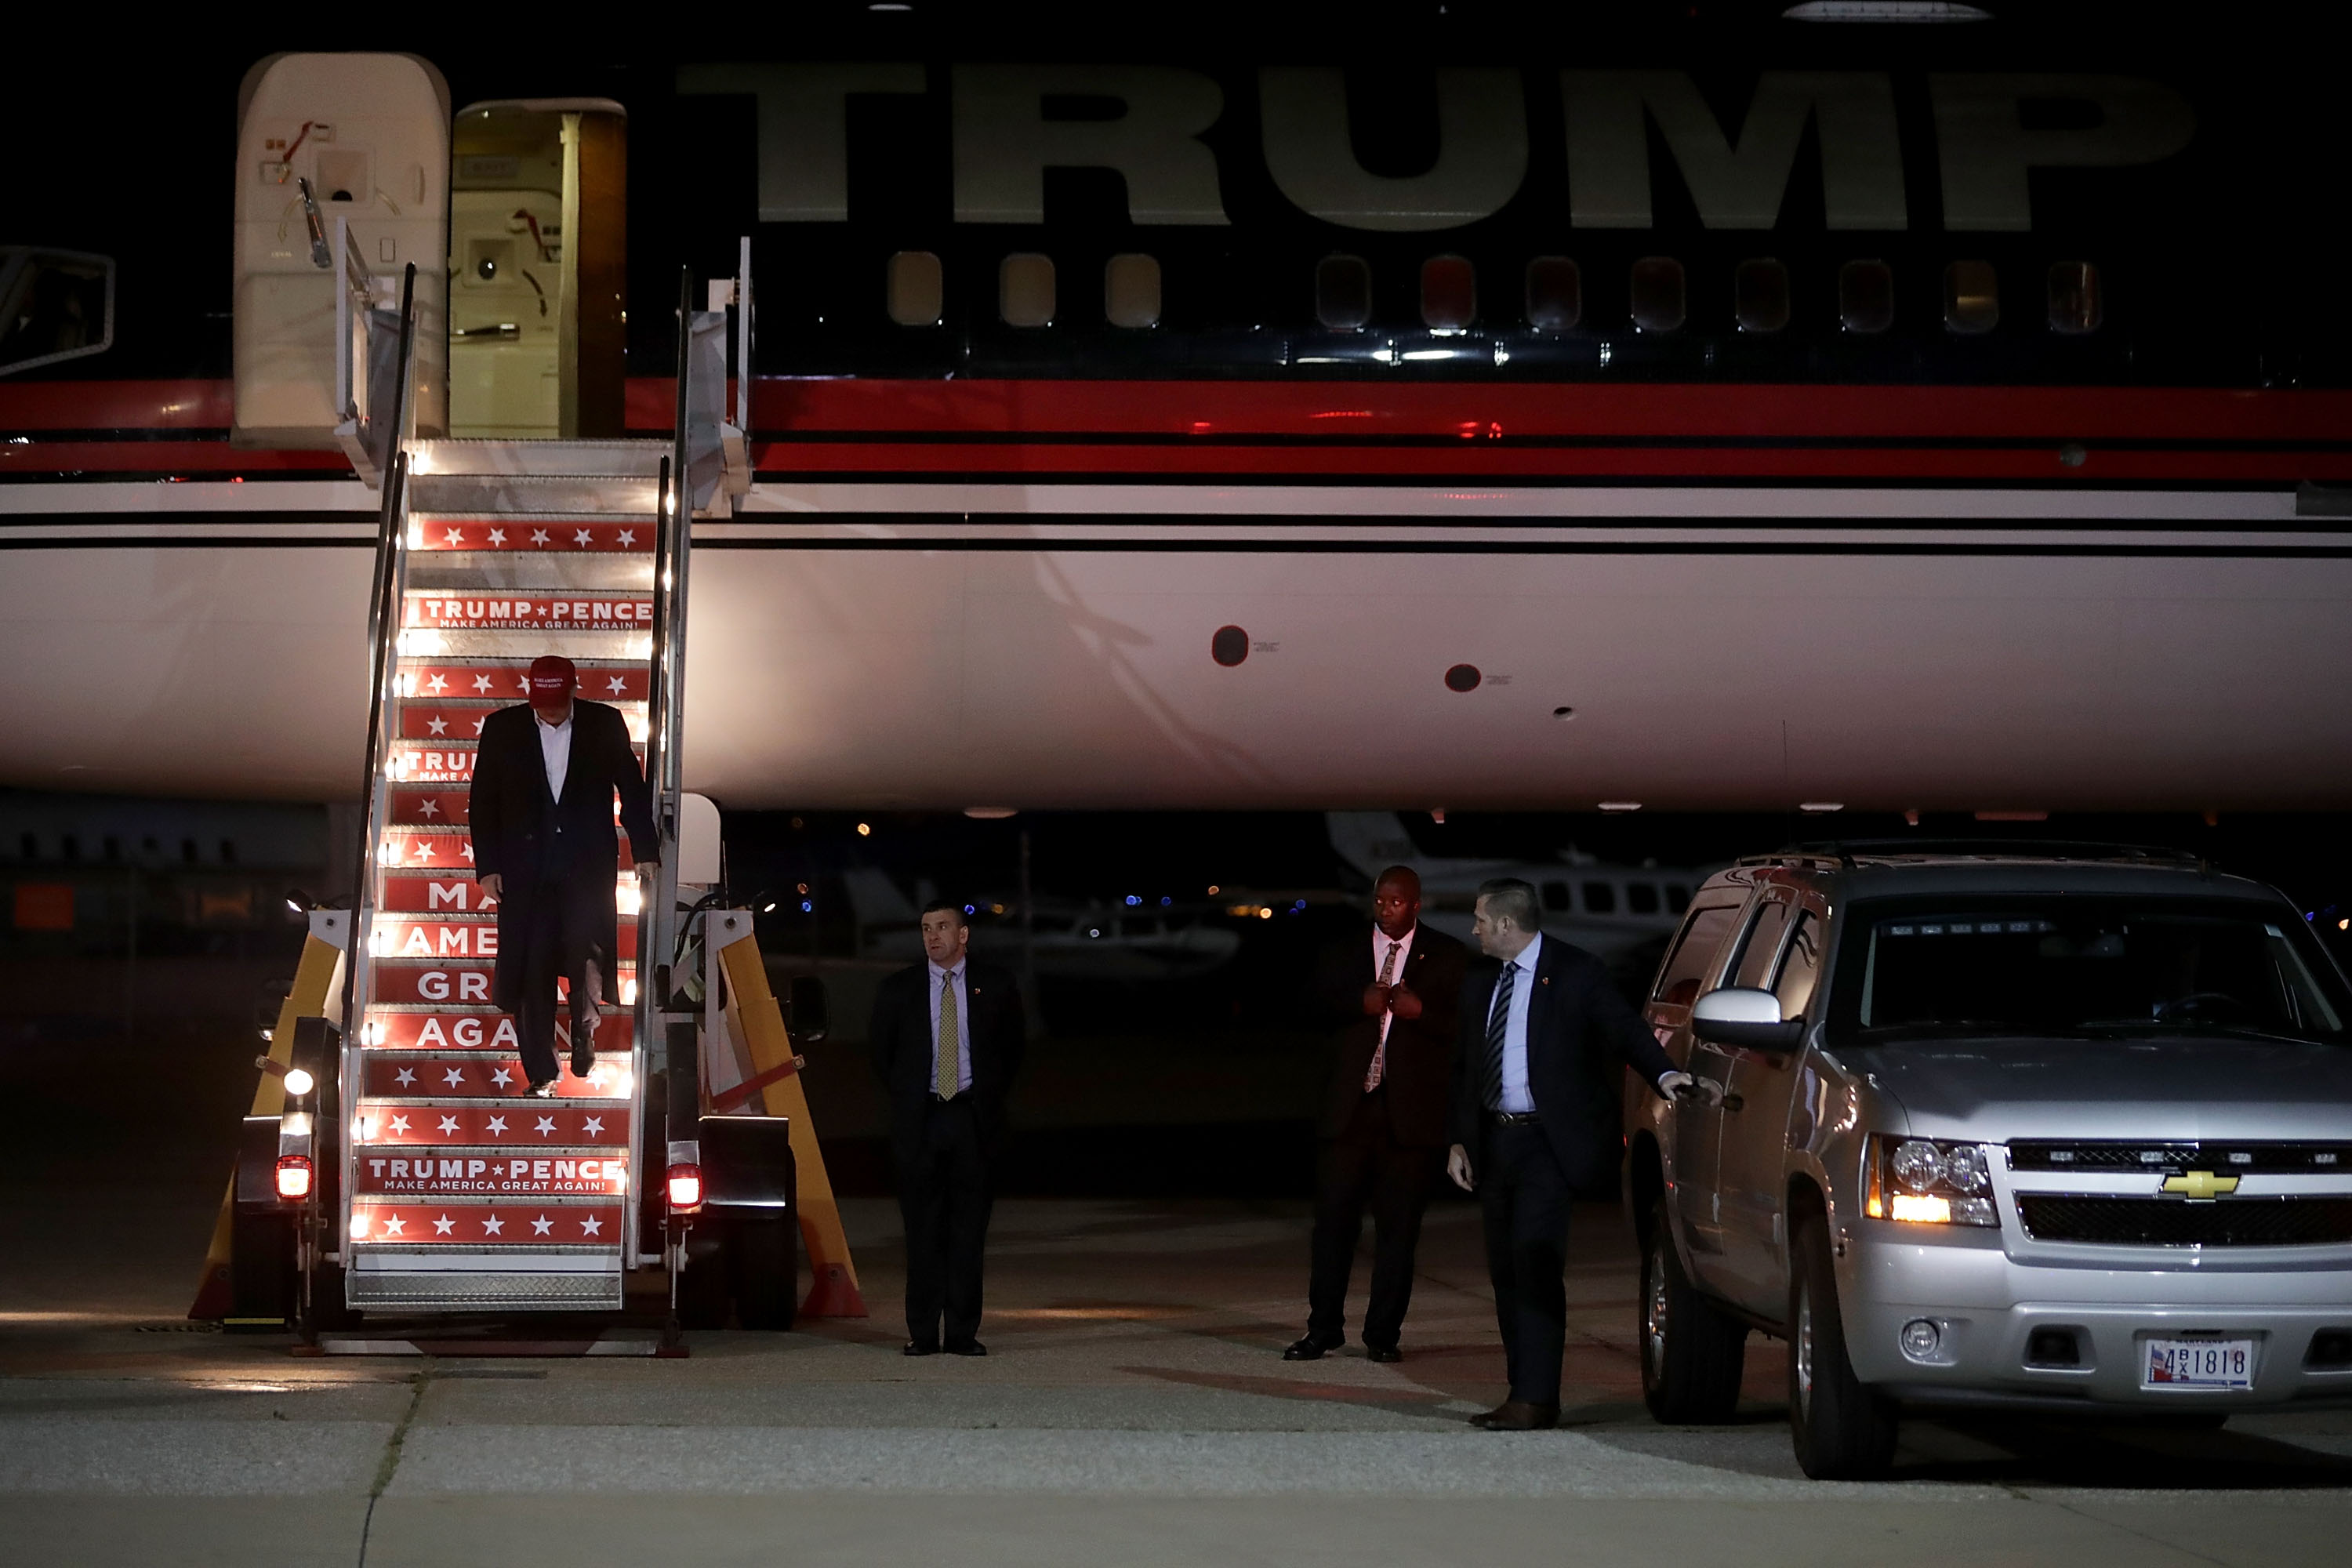 Trump can now loot millions of dollars from the Secret Service with no disclosure